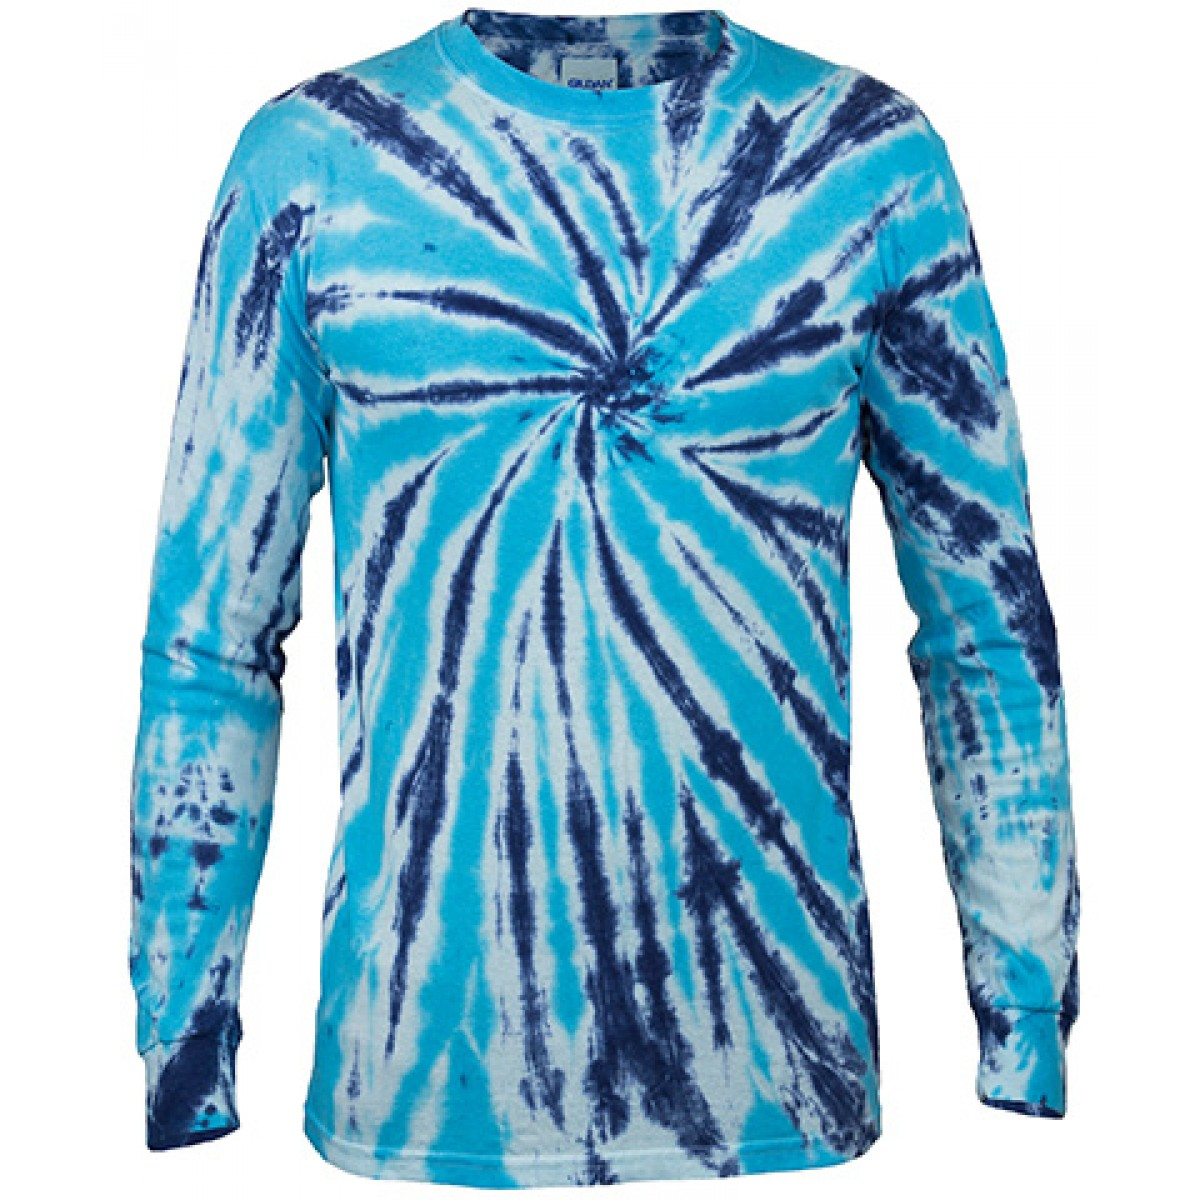 Multi Color Tie-Dye Long Sleeve Shirt -Royal Blue-S